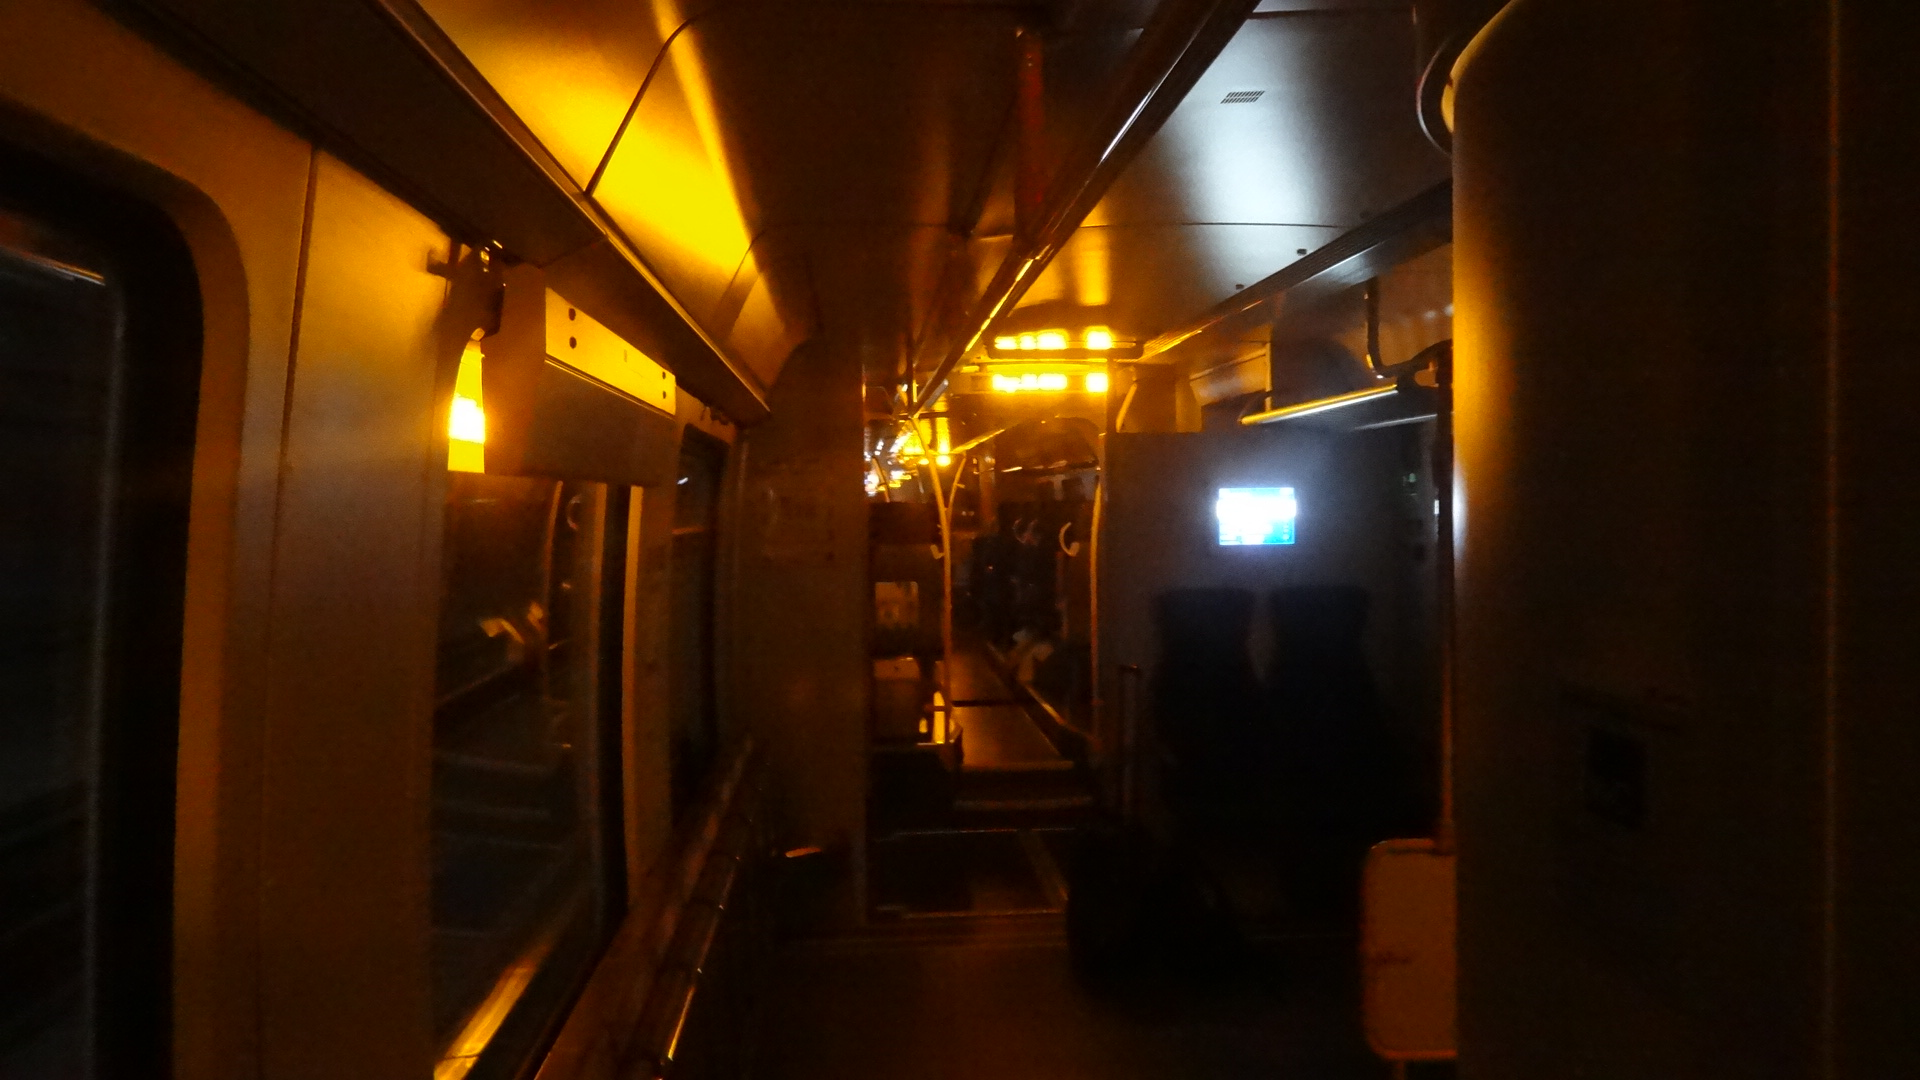 S-Bahn without interior lights inside a tunnel